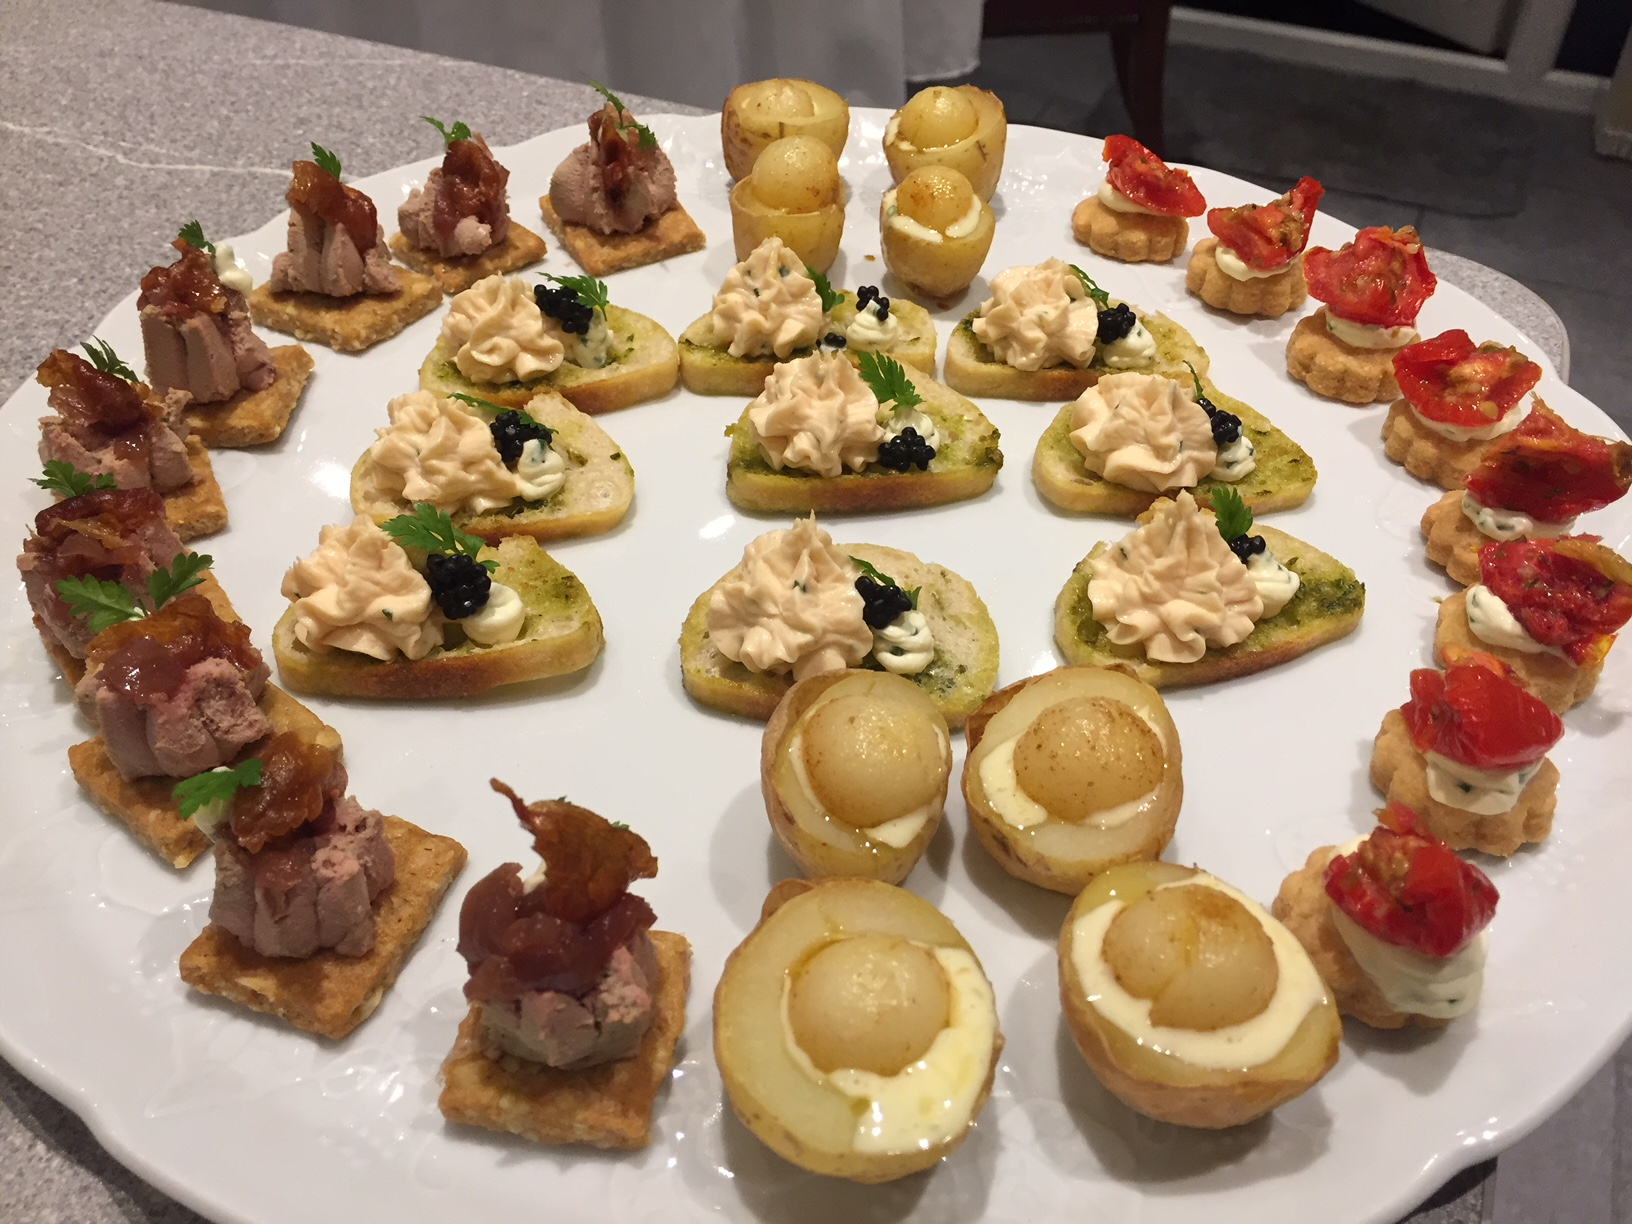 Dinner party canapes for 8 catering scotland for events for Canape examples